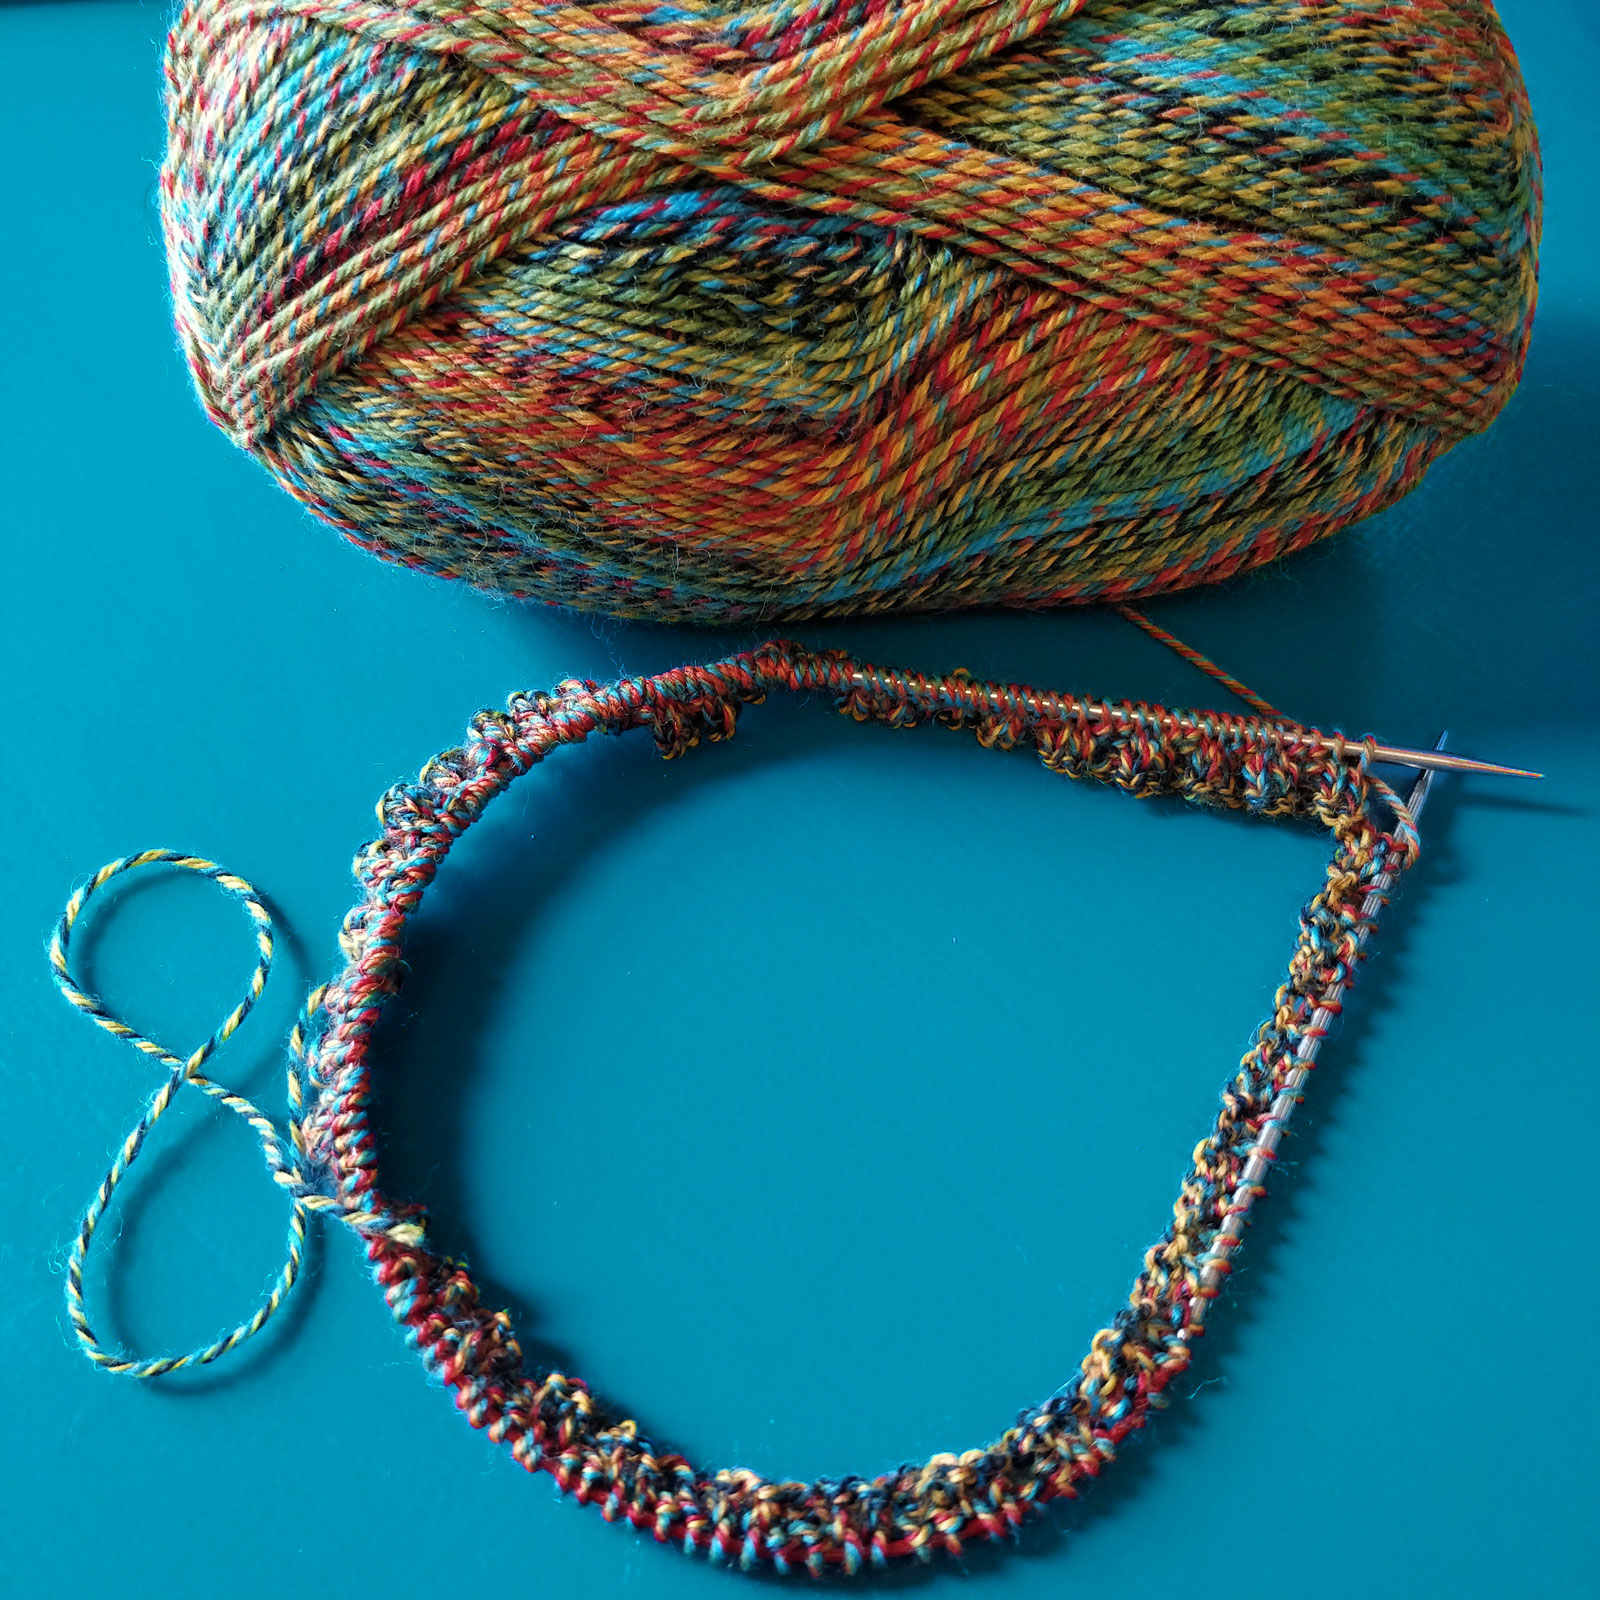 "The bare beginnings of a hat on 16"" circular needles, with an entire ball of multi-coloured sock yarn above it, sit on a teal desktop."